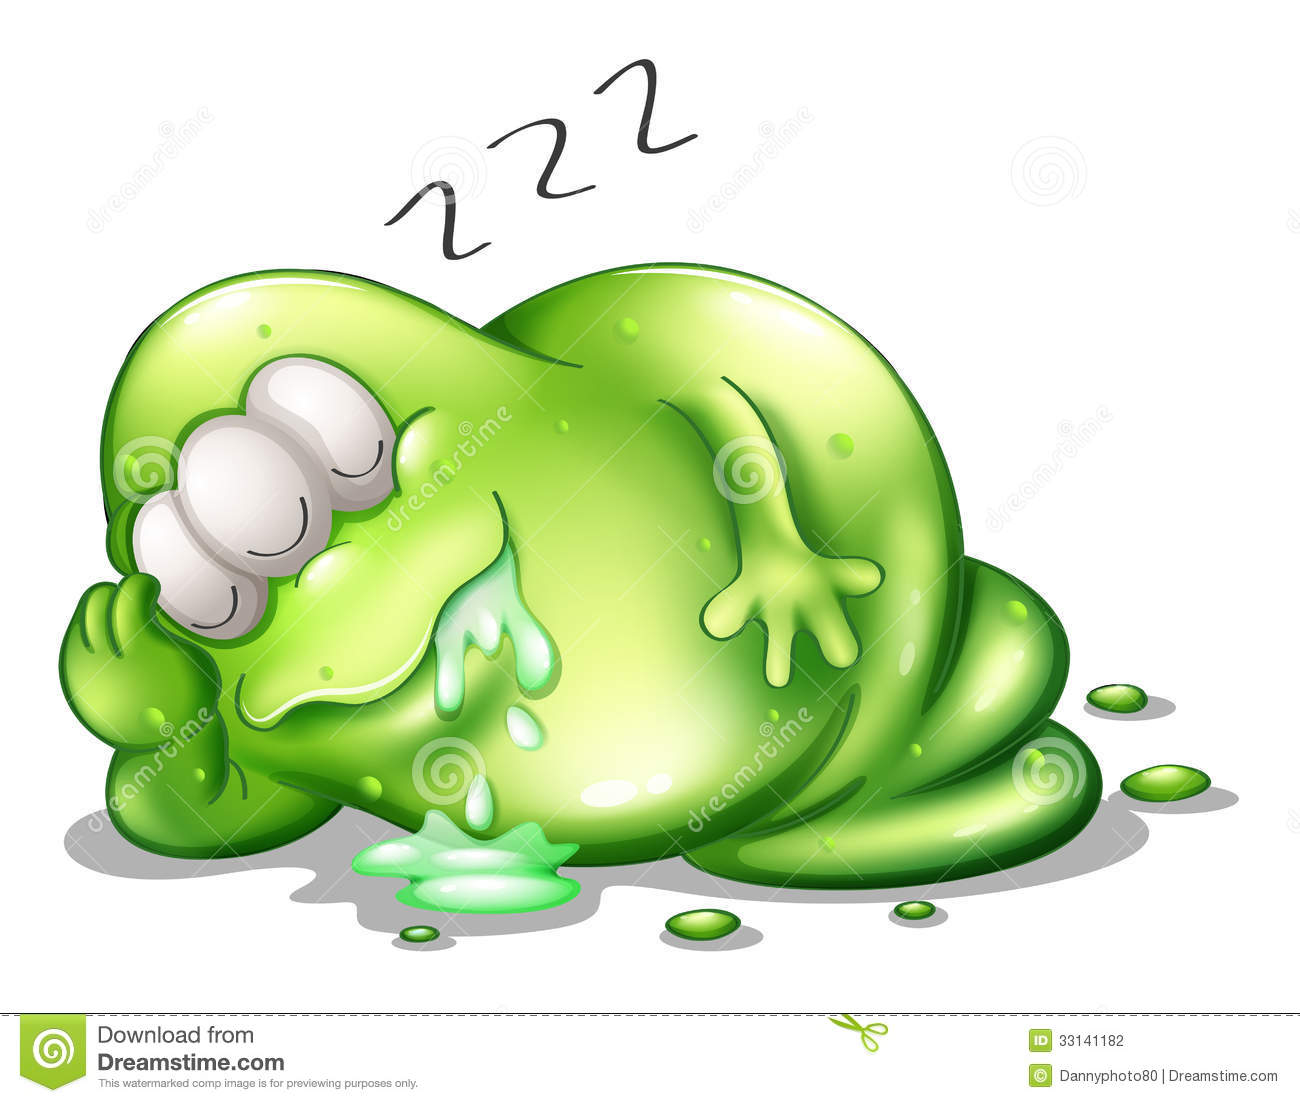 Illustration of a greenslime monster sleeping on a white background.